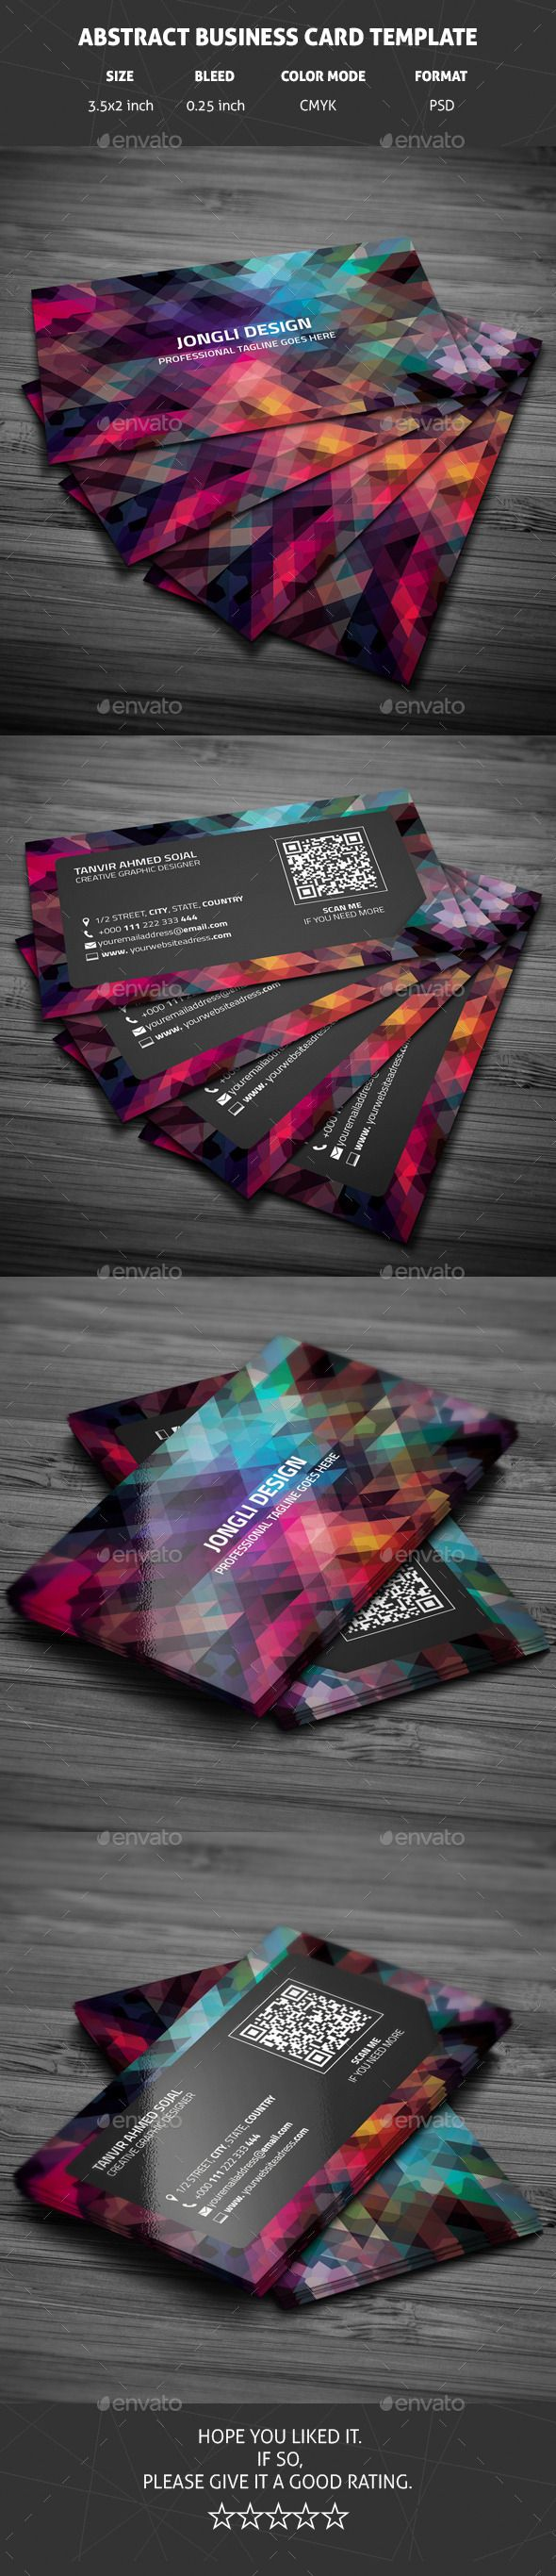 Abstract Business Card Template #design Download: http://graphicriver.net/item/abstract-business-card-template/10681062?ref=ksioks